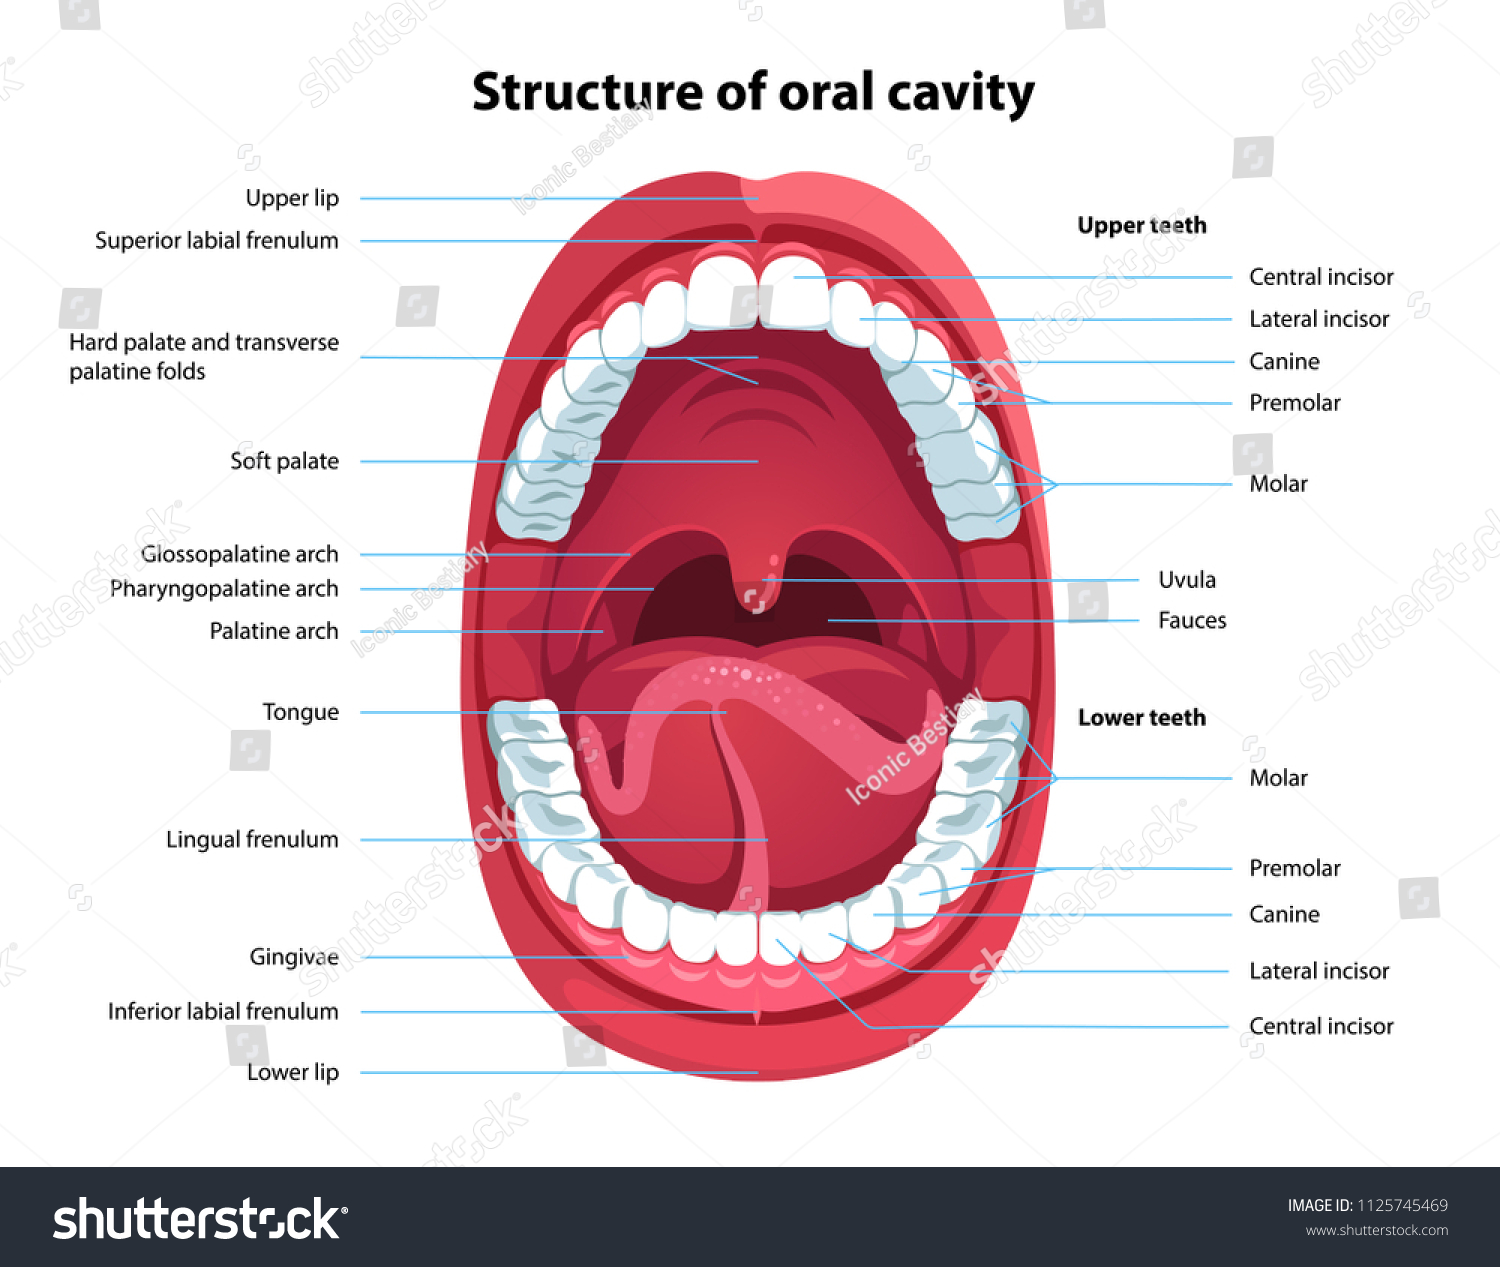 Structure Oral Cavity Human Mouth Anatomy Stock Vector 1125745469 ...